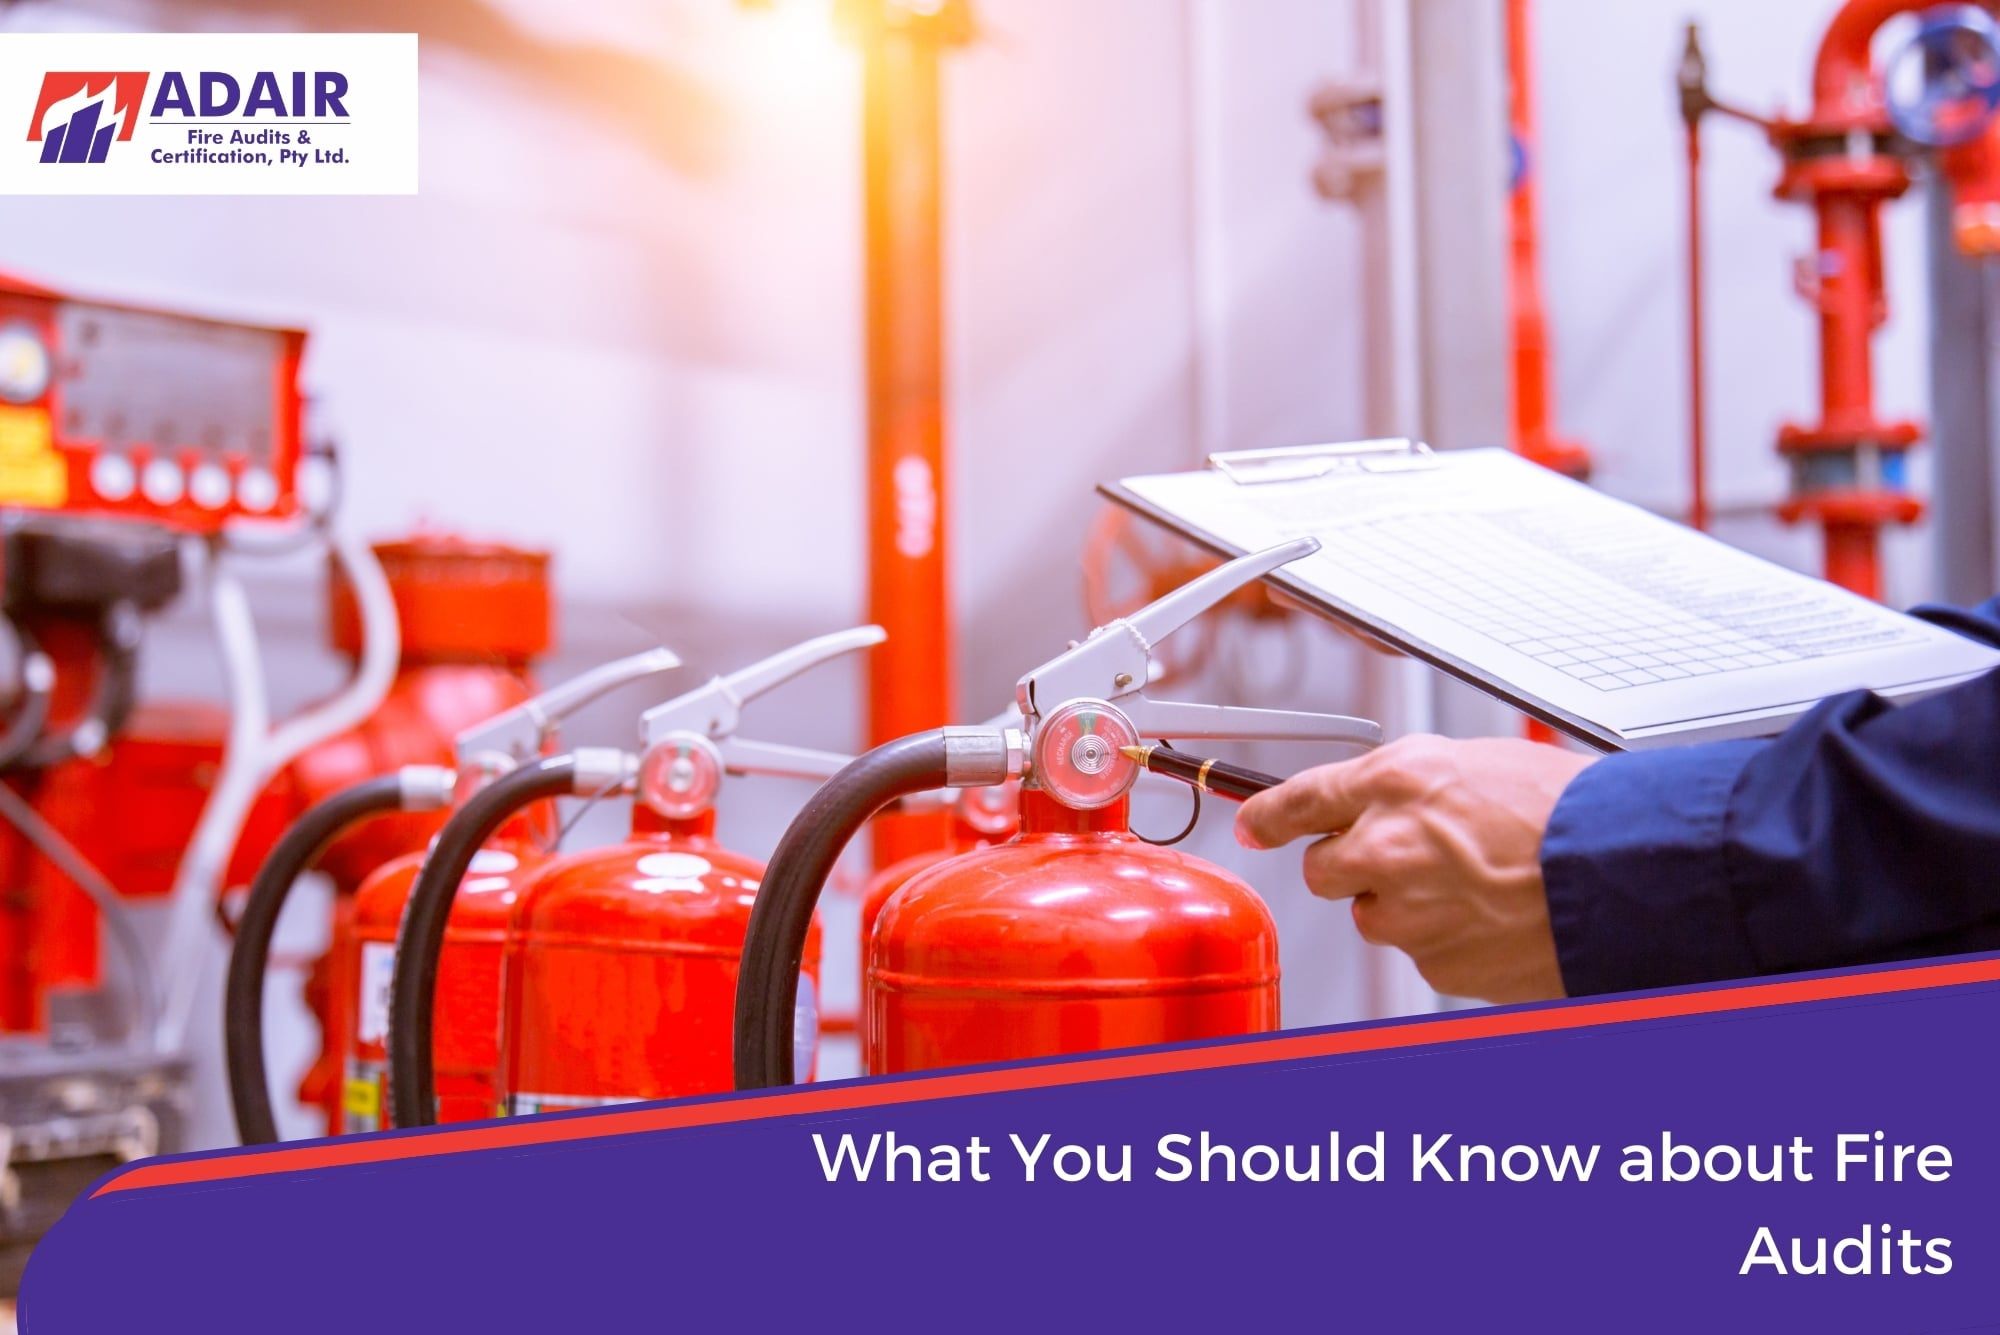 What You Should Know about Fire Audits